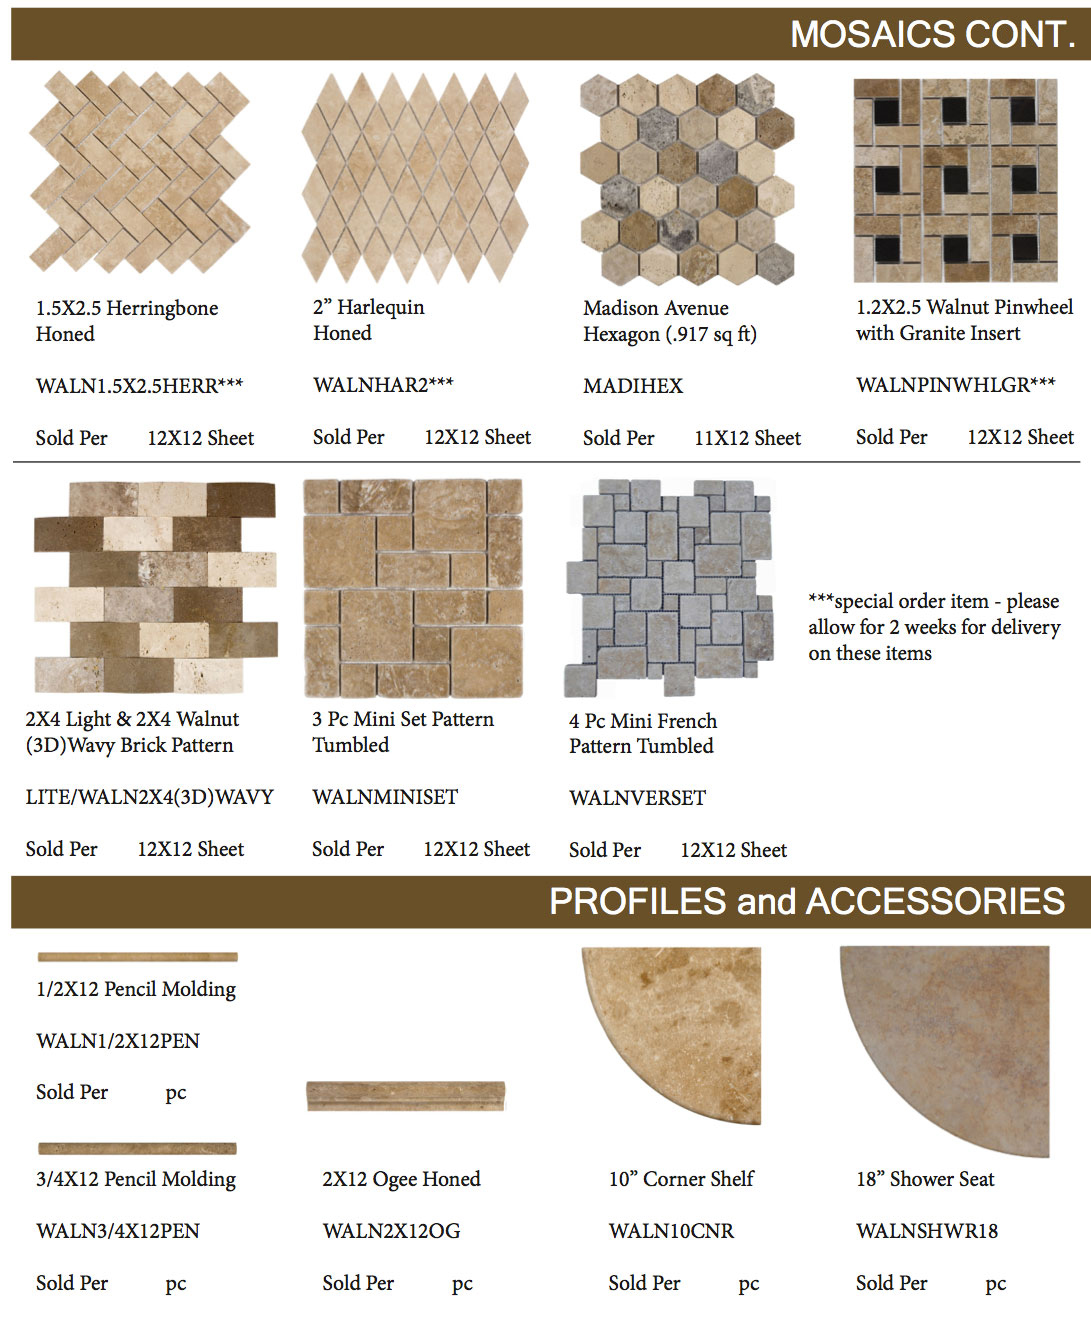 Walnut-Travertine-Mosaics-Continued-Profiles-and-Accessories